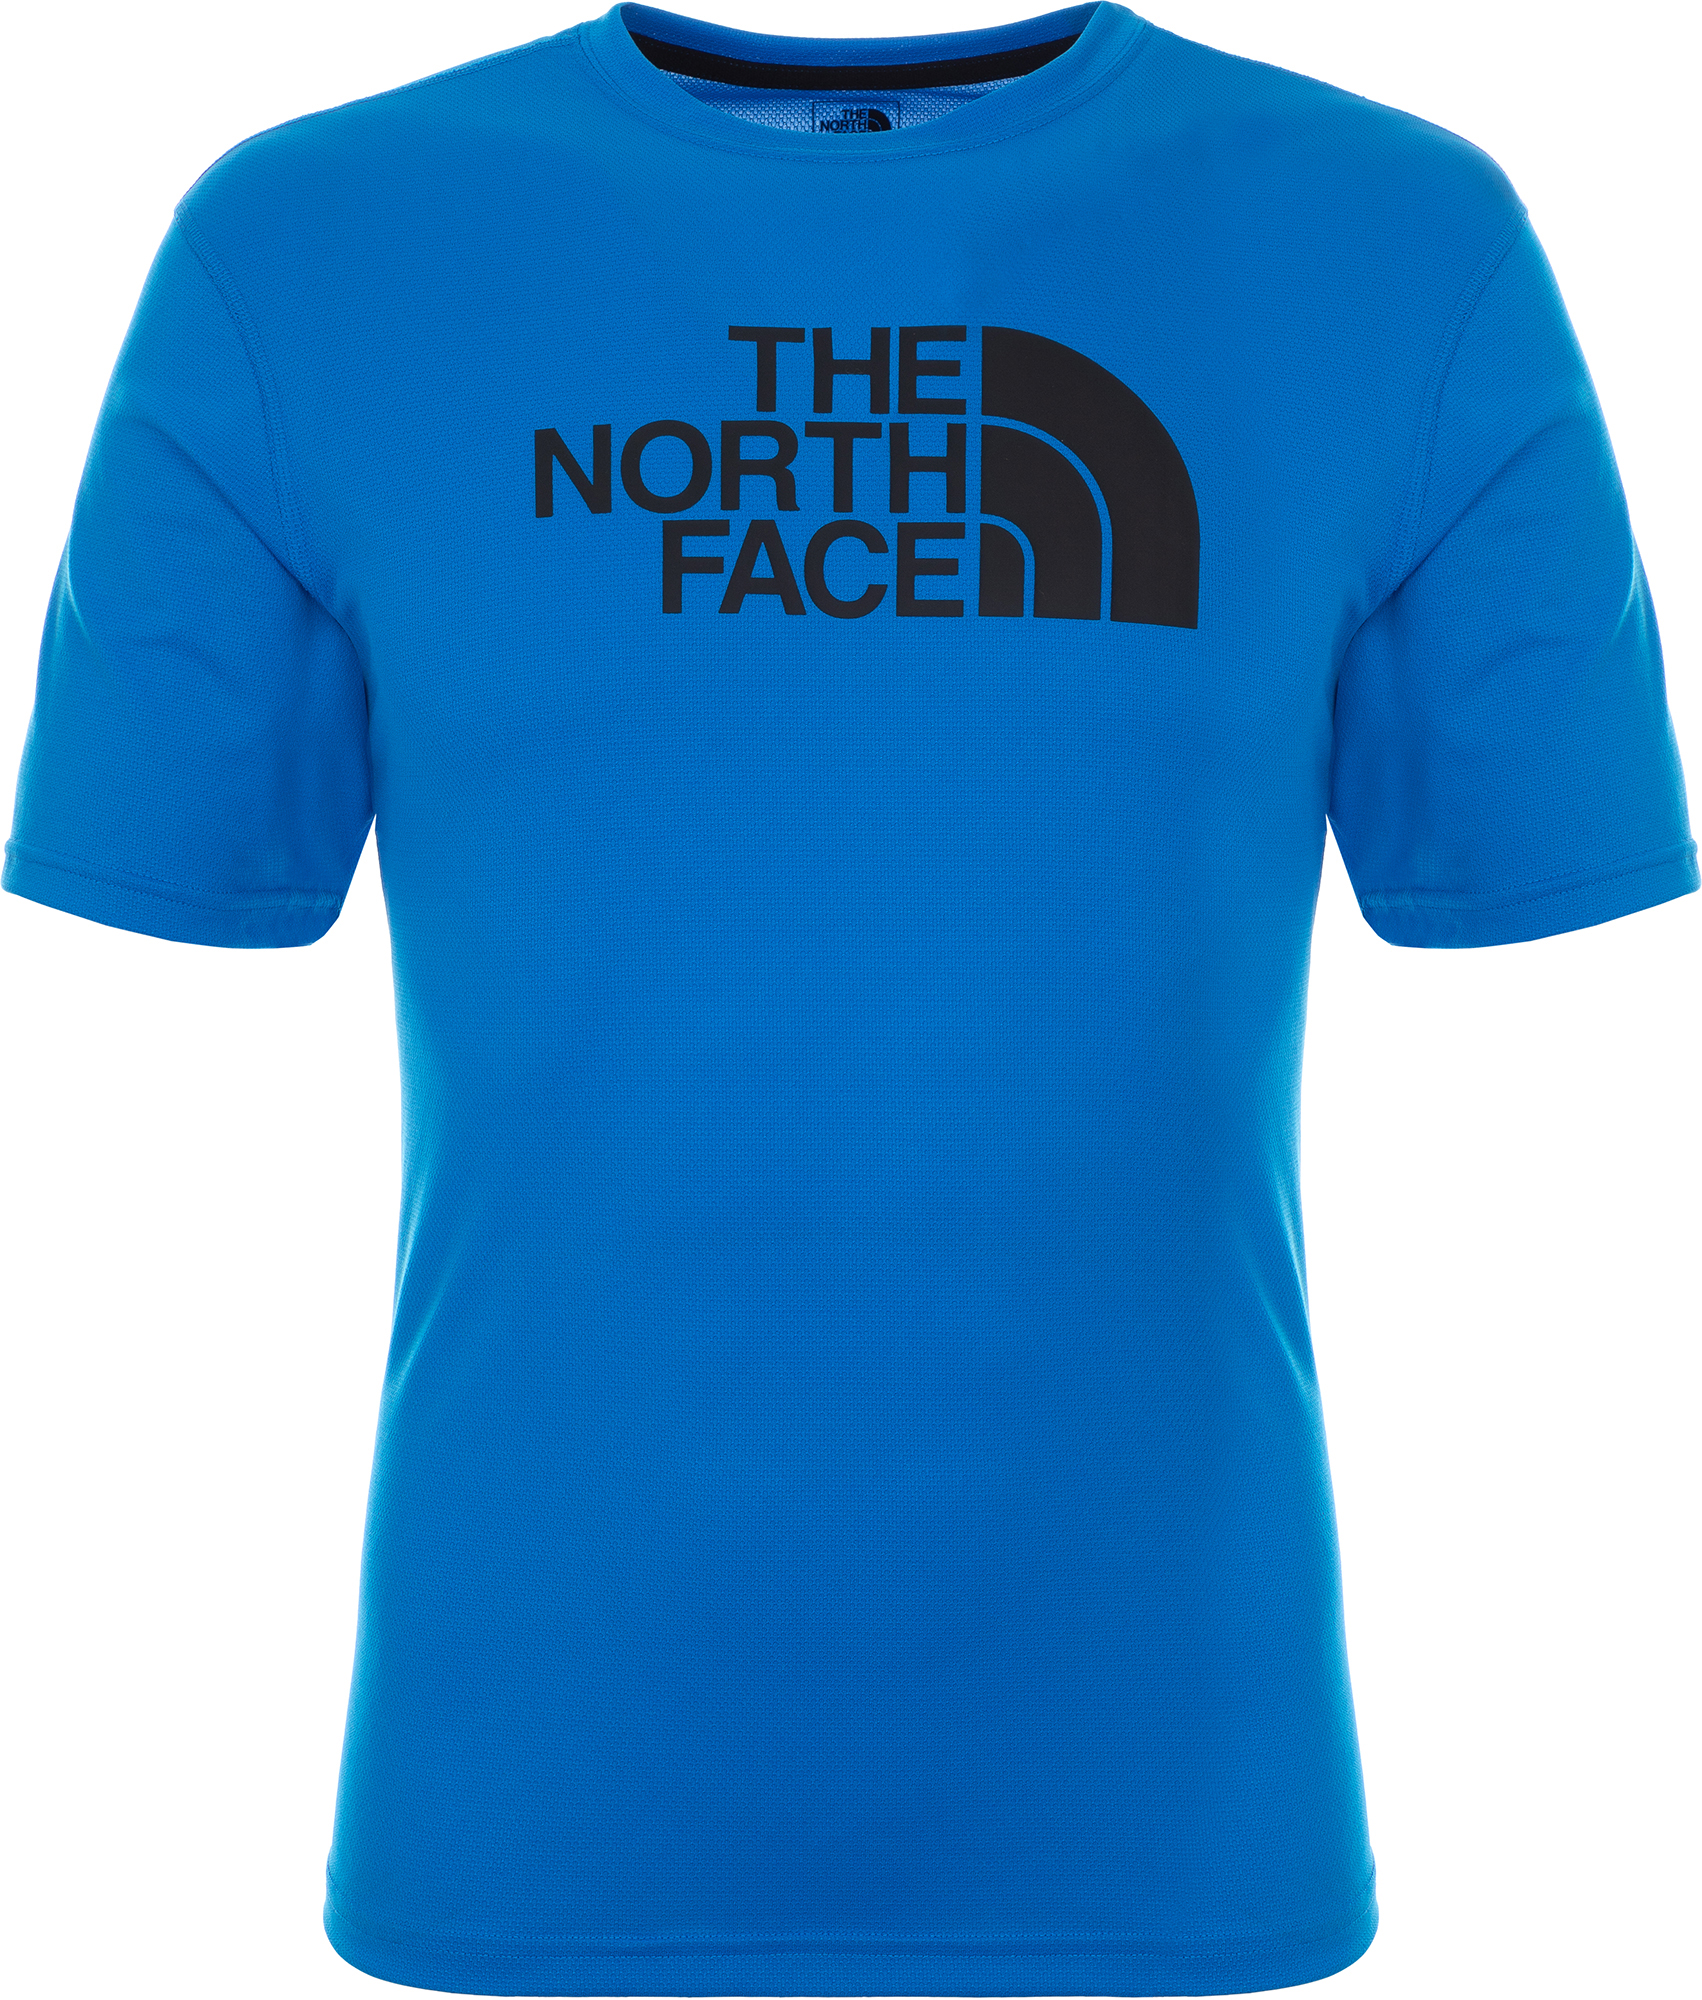 The North Face Футболка мужская The North Face Train N Logo Flex, размер 50 цена